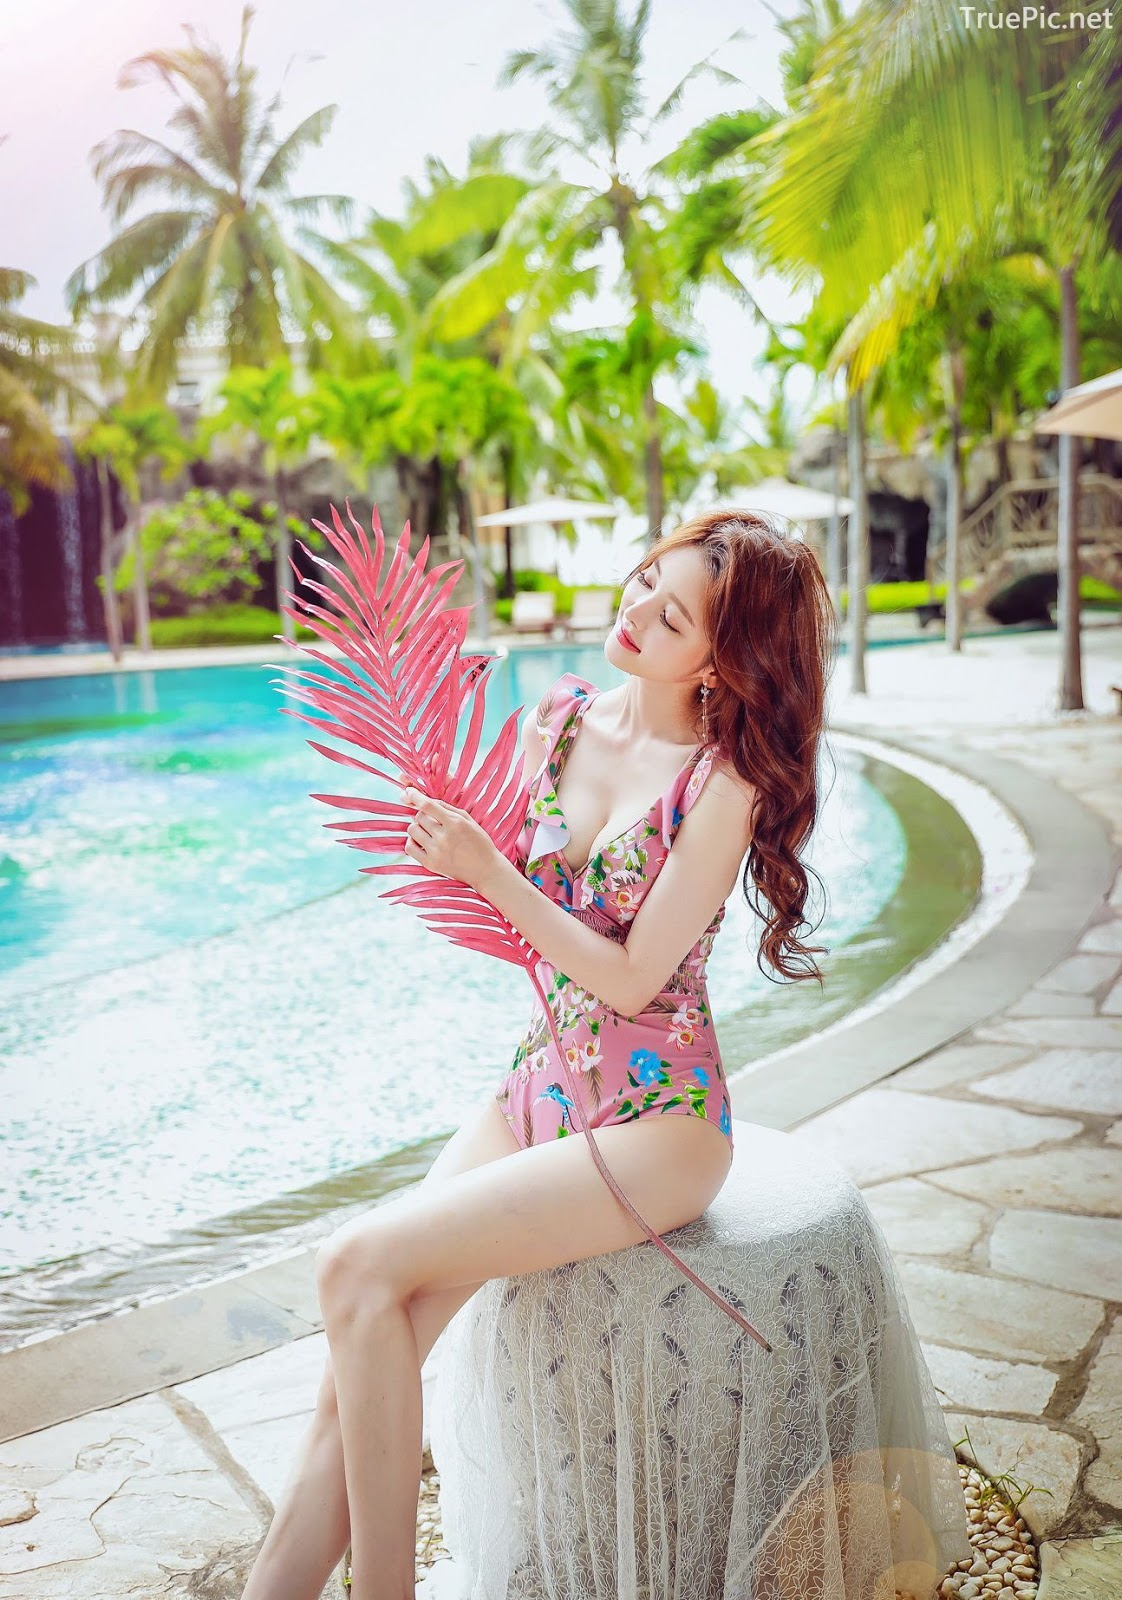 Korean lingerie queen model - Kim Hee Jeong - Floral Pink Swimsuit - Picture 9